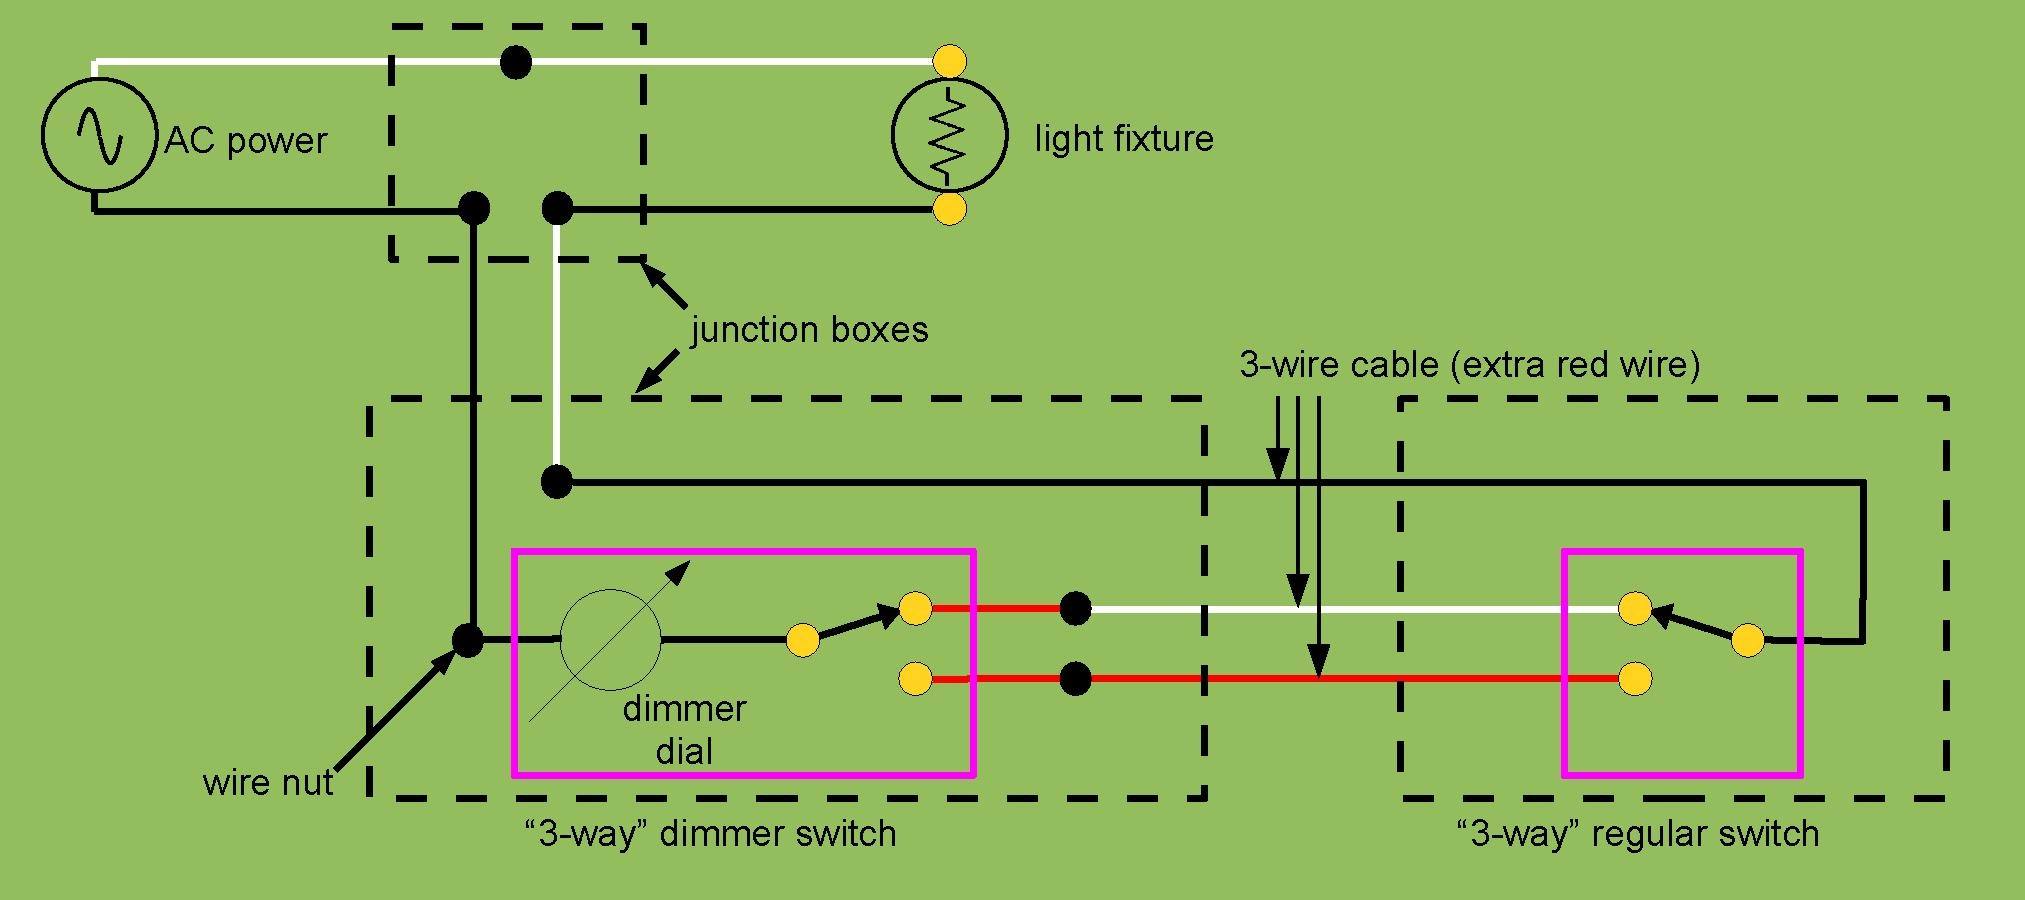 File:3-Way Dimmer Switch Wiring.pdf - Wikimedia Commons - Dimmer Switch Wiring Diagram